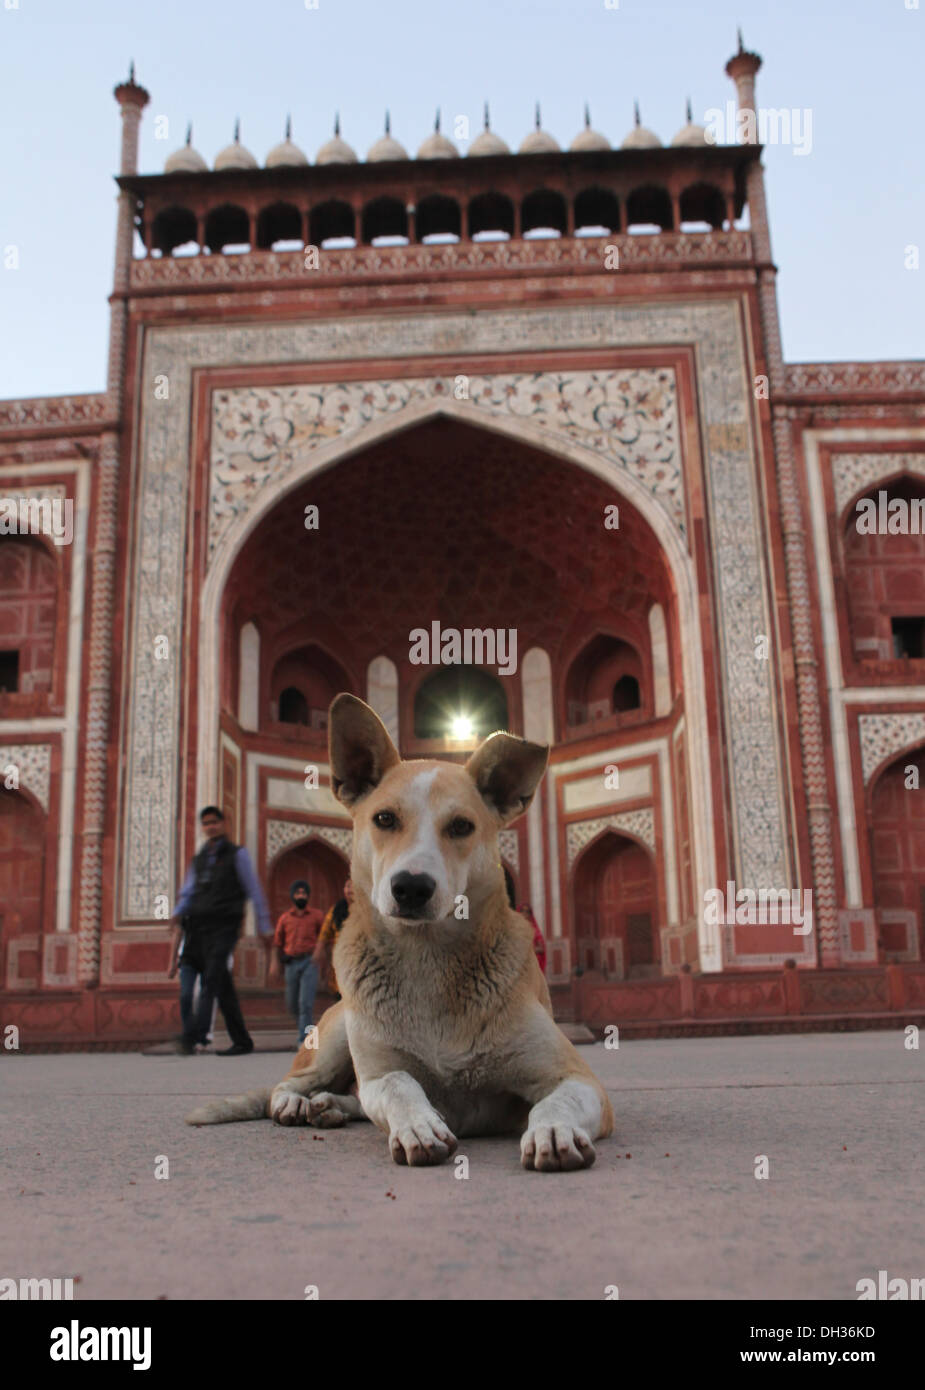 Dog in front of the entrance to the Taj Mahal, Agra, Uttar Pradesh, India, Asia - Stock Image